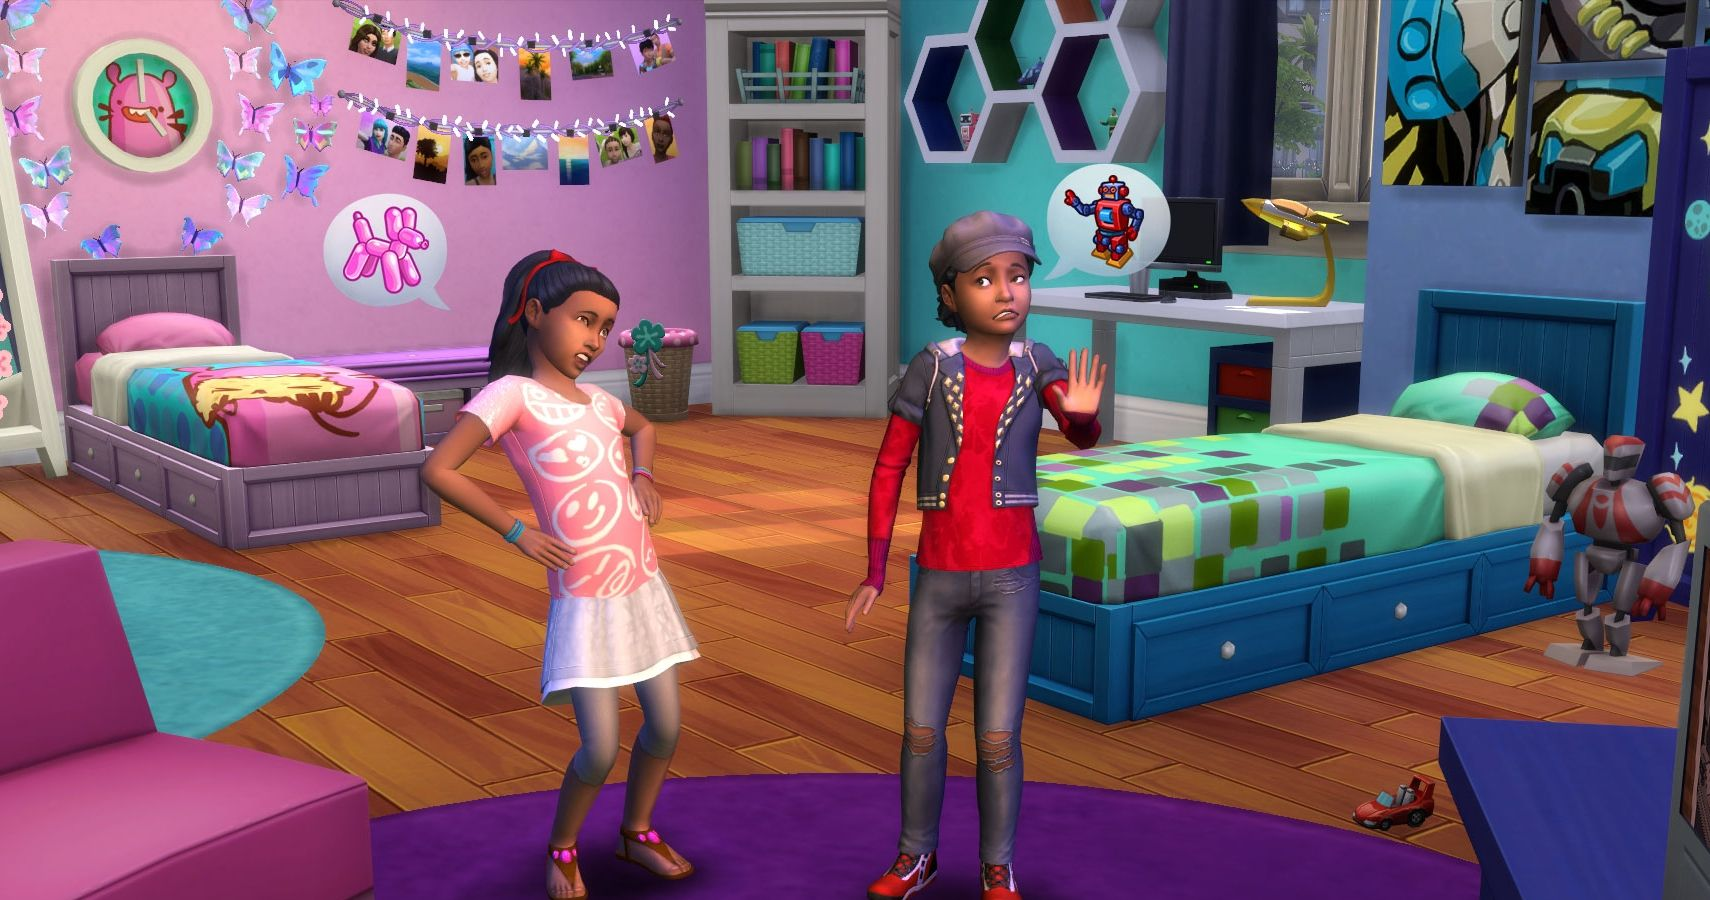 Ranked: Every Sims 4 Stuff Pack, From The Worst To The Best